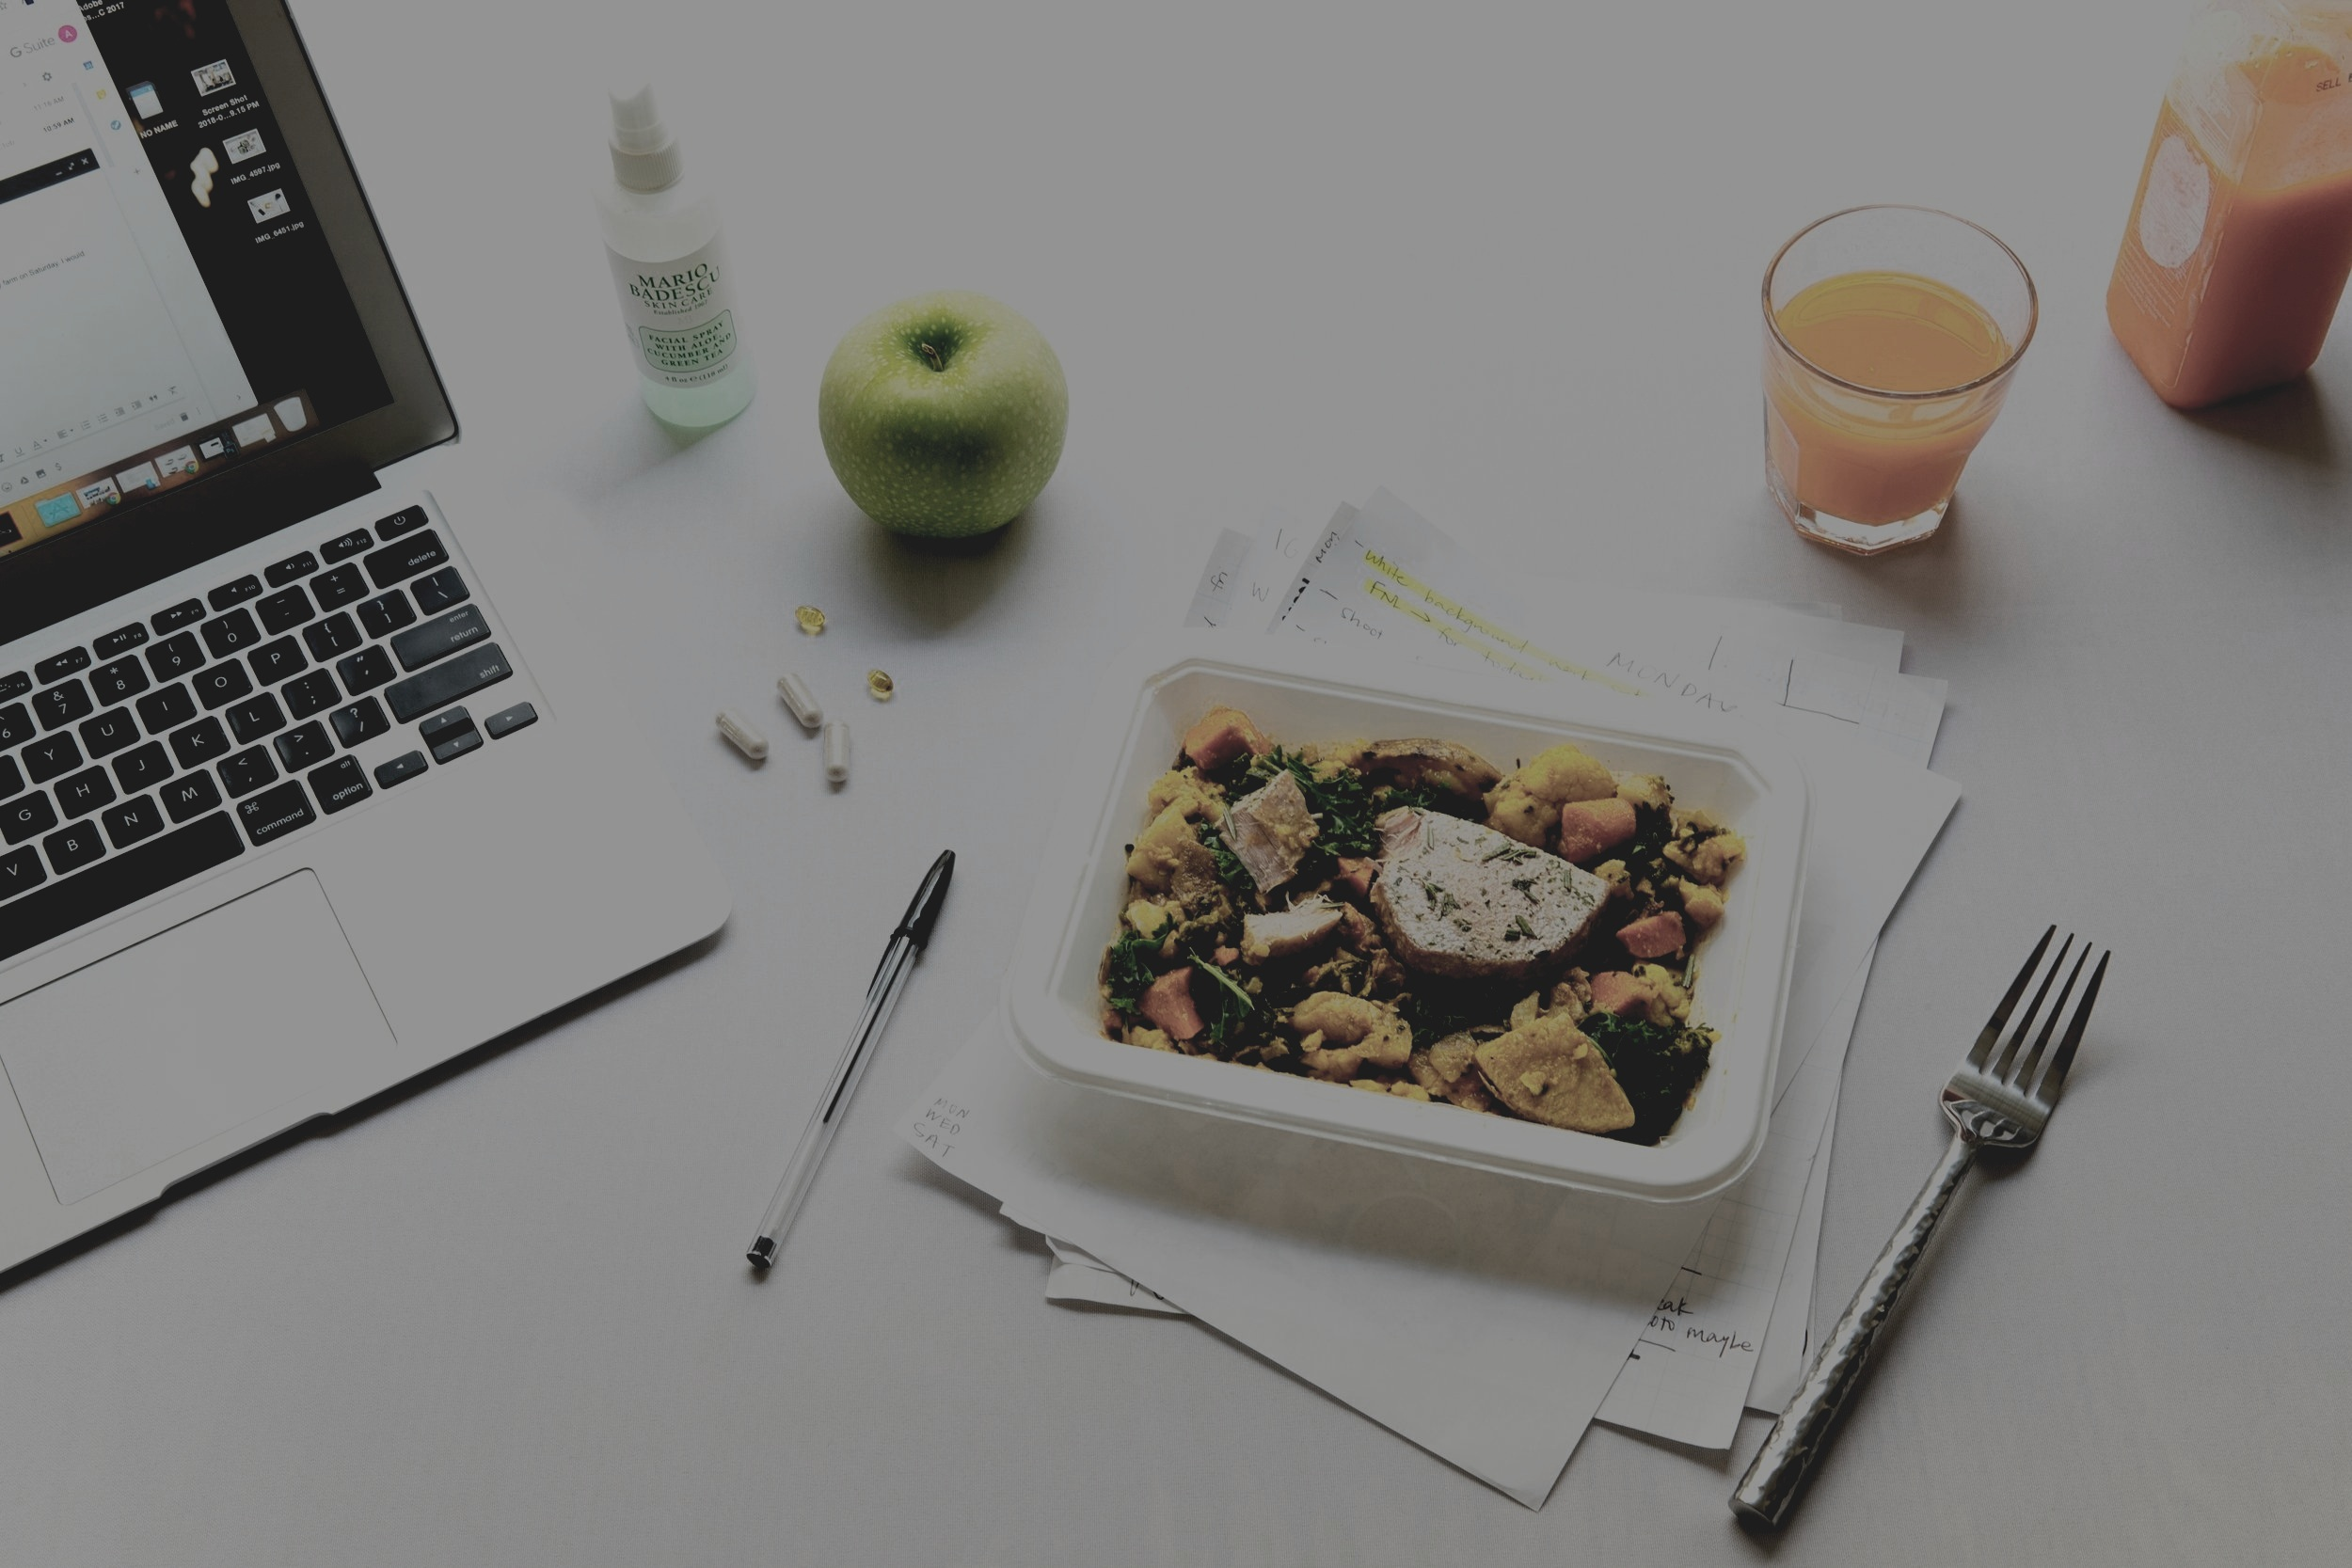 Upgrade your wellness business - …with our scientific algorithm, customizable meal plan templates, and client management & interaction tools.